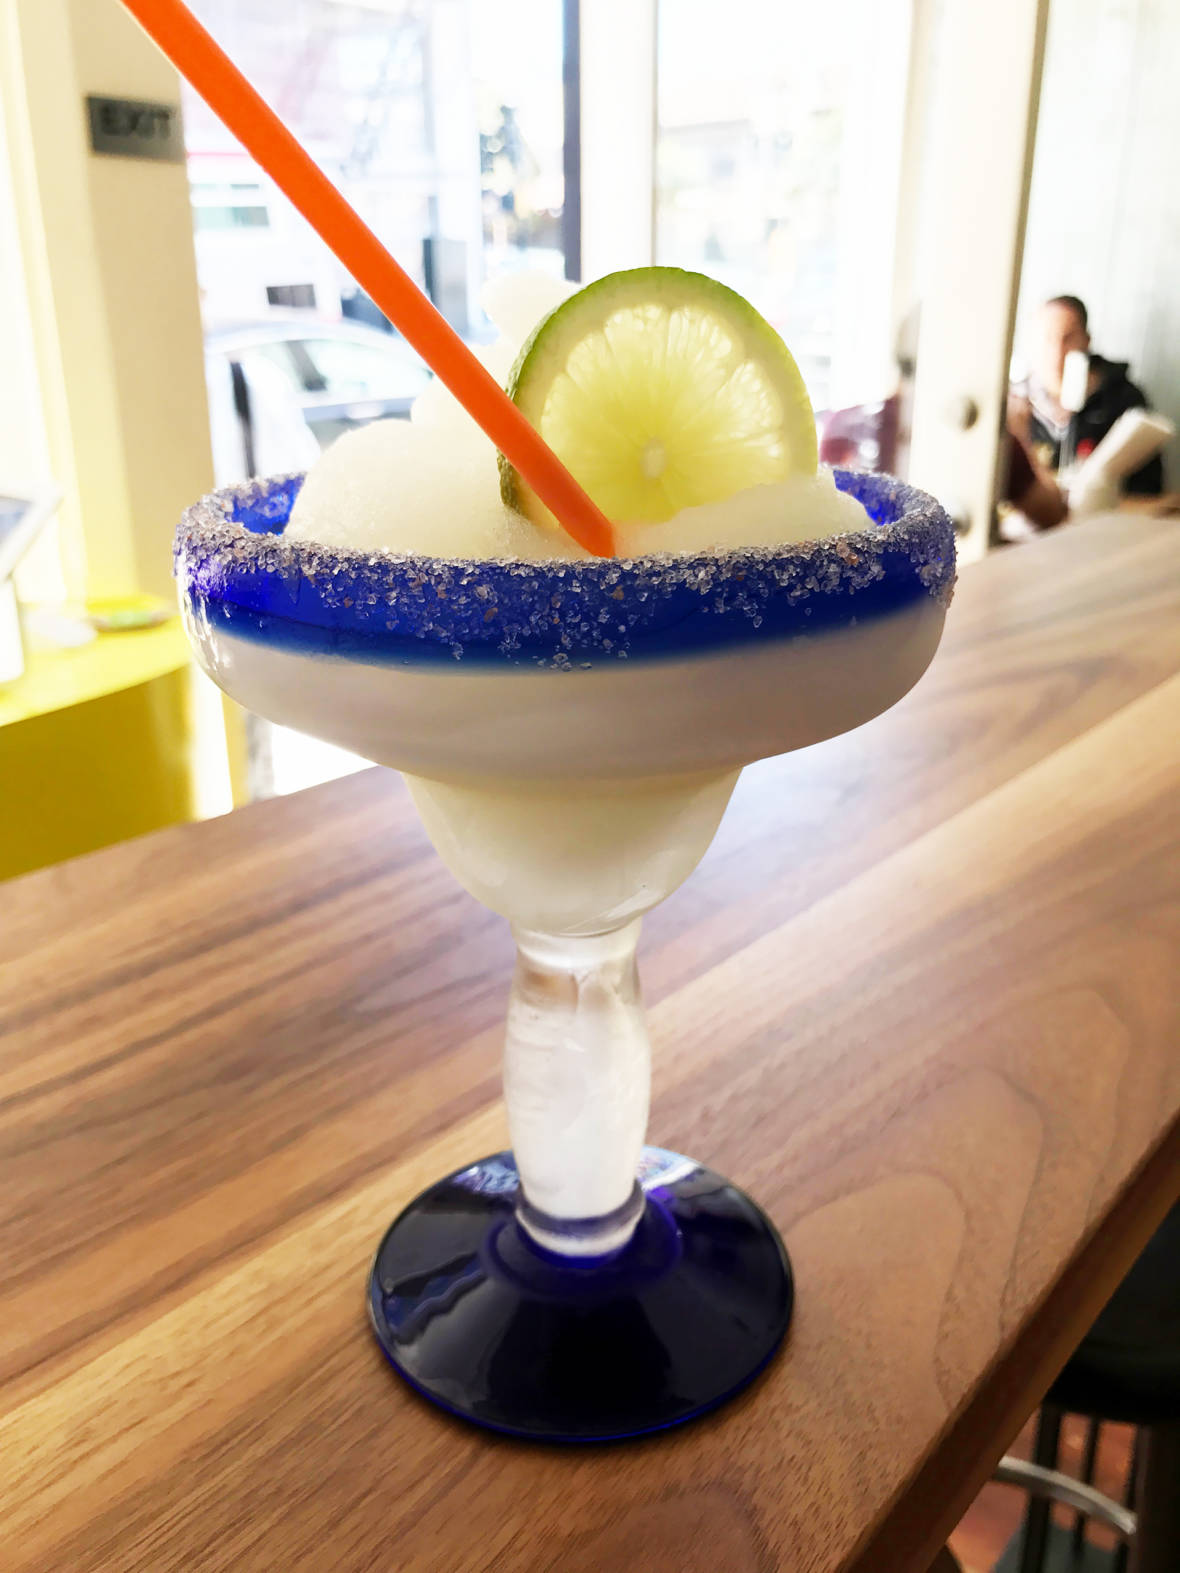 Glena's Tacos & Margaritas Launches The Blended Margarita Just in Time for Cinco de Mayo Weekend